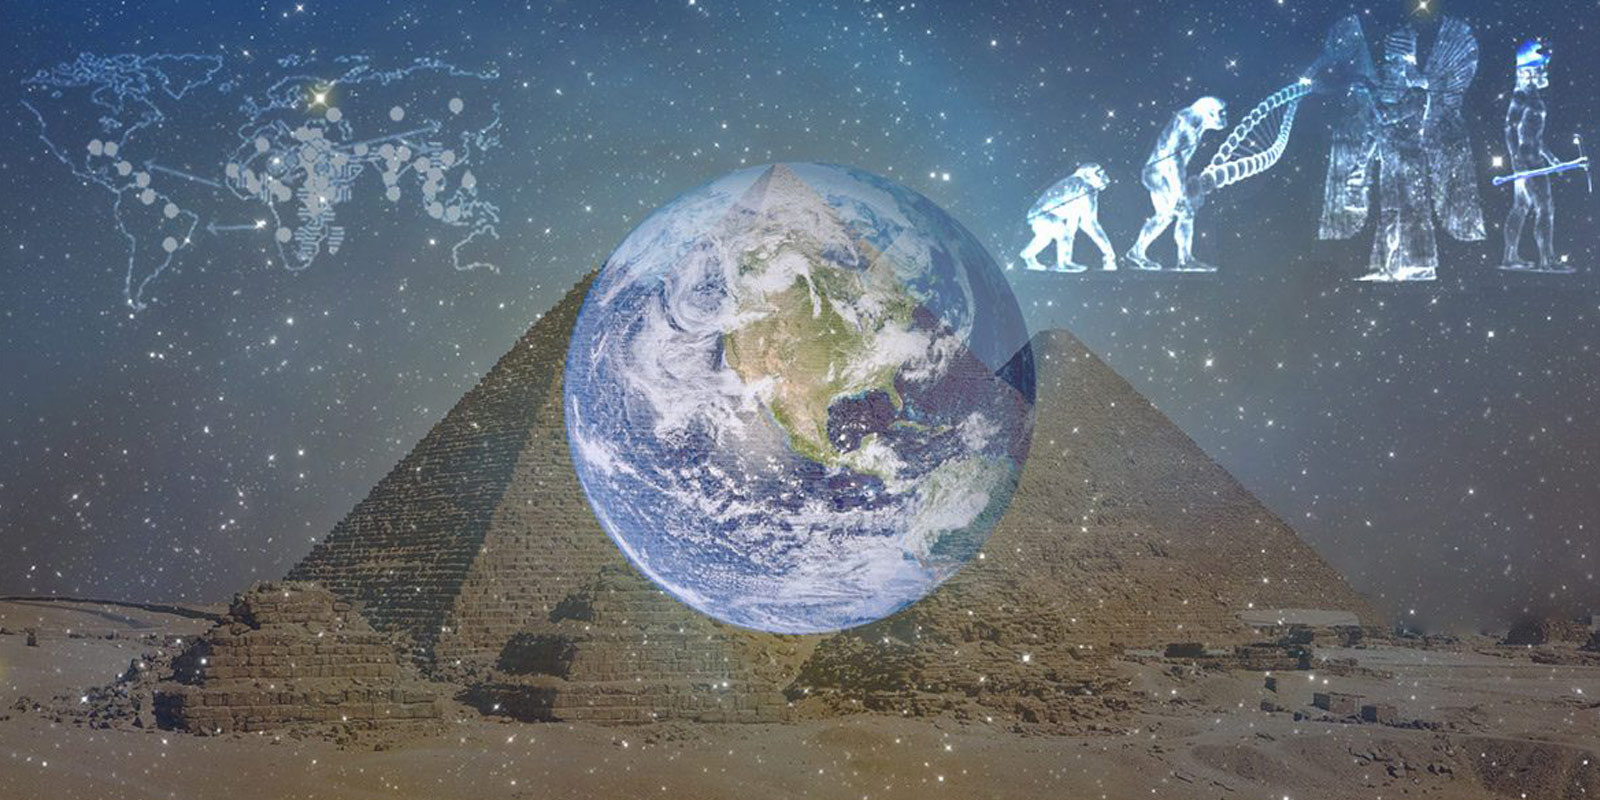 From astral omens to astrology from Babylon to Bikaner